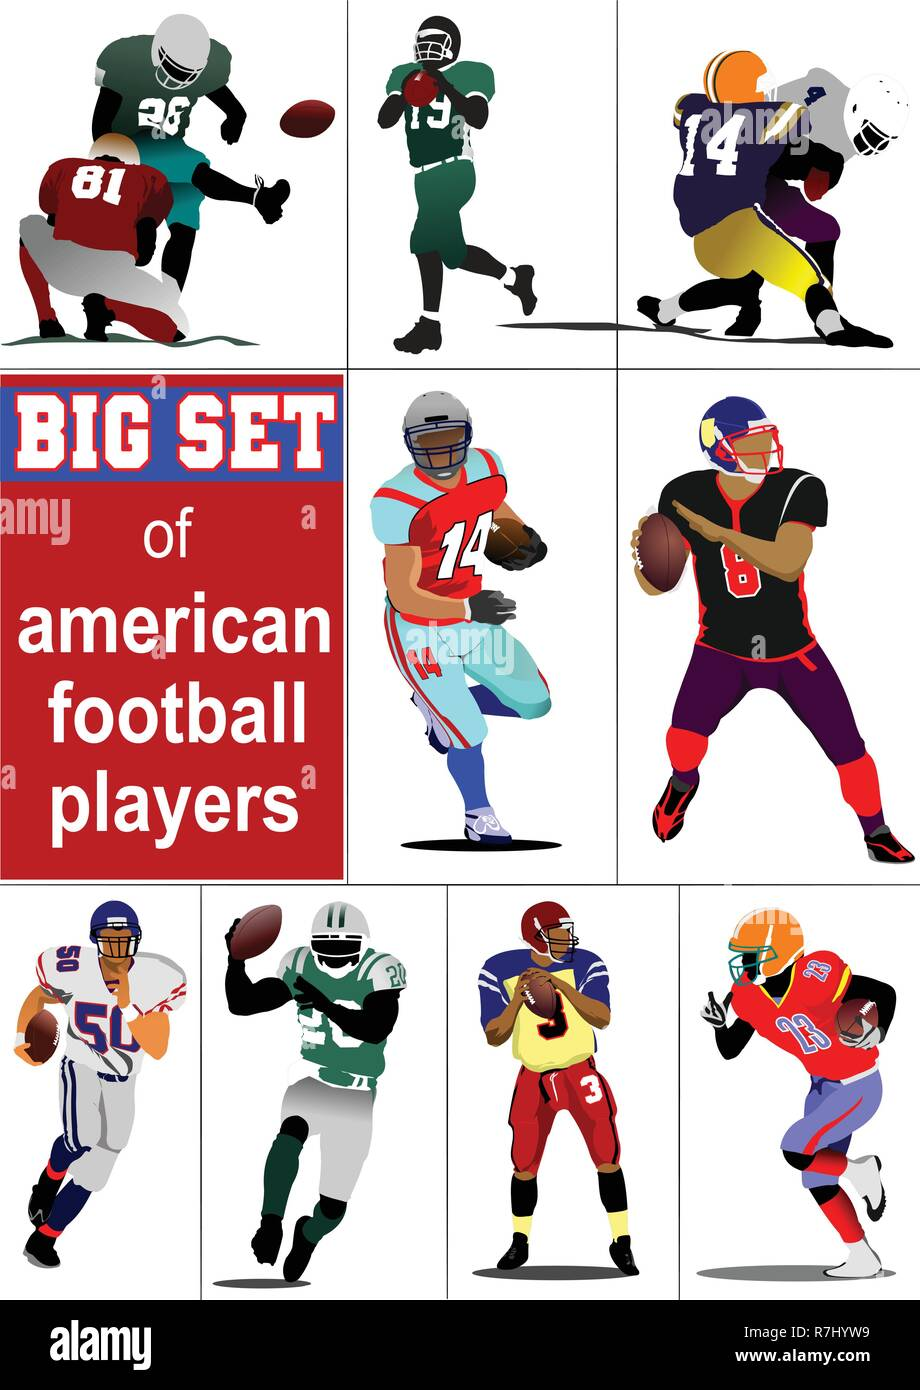 Big set of American football player s silhouettes in action. Vector illustration - Stock Vector